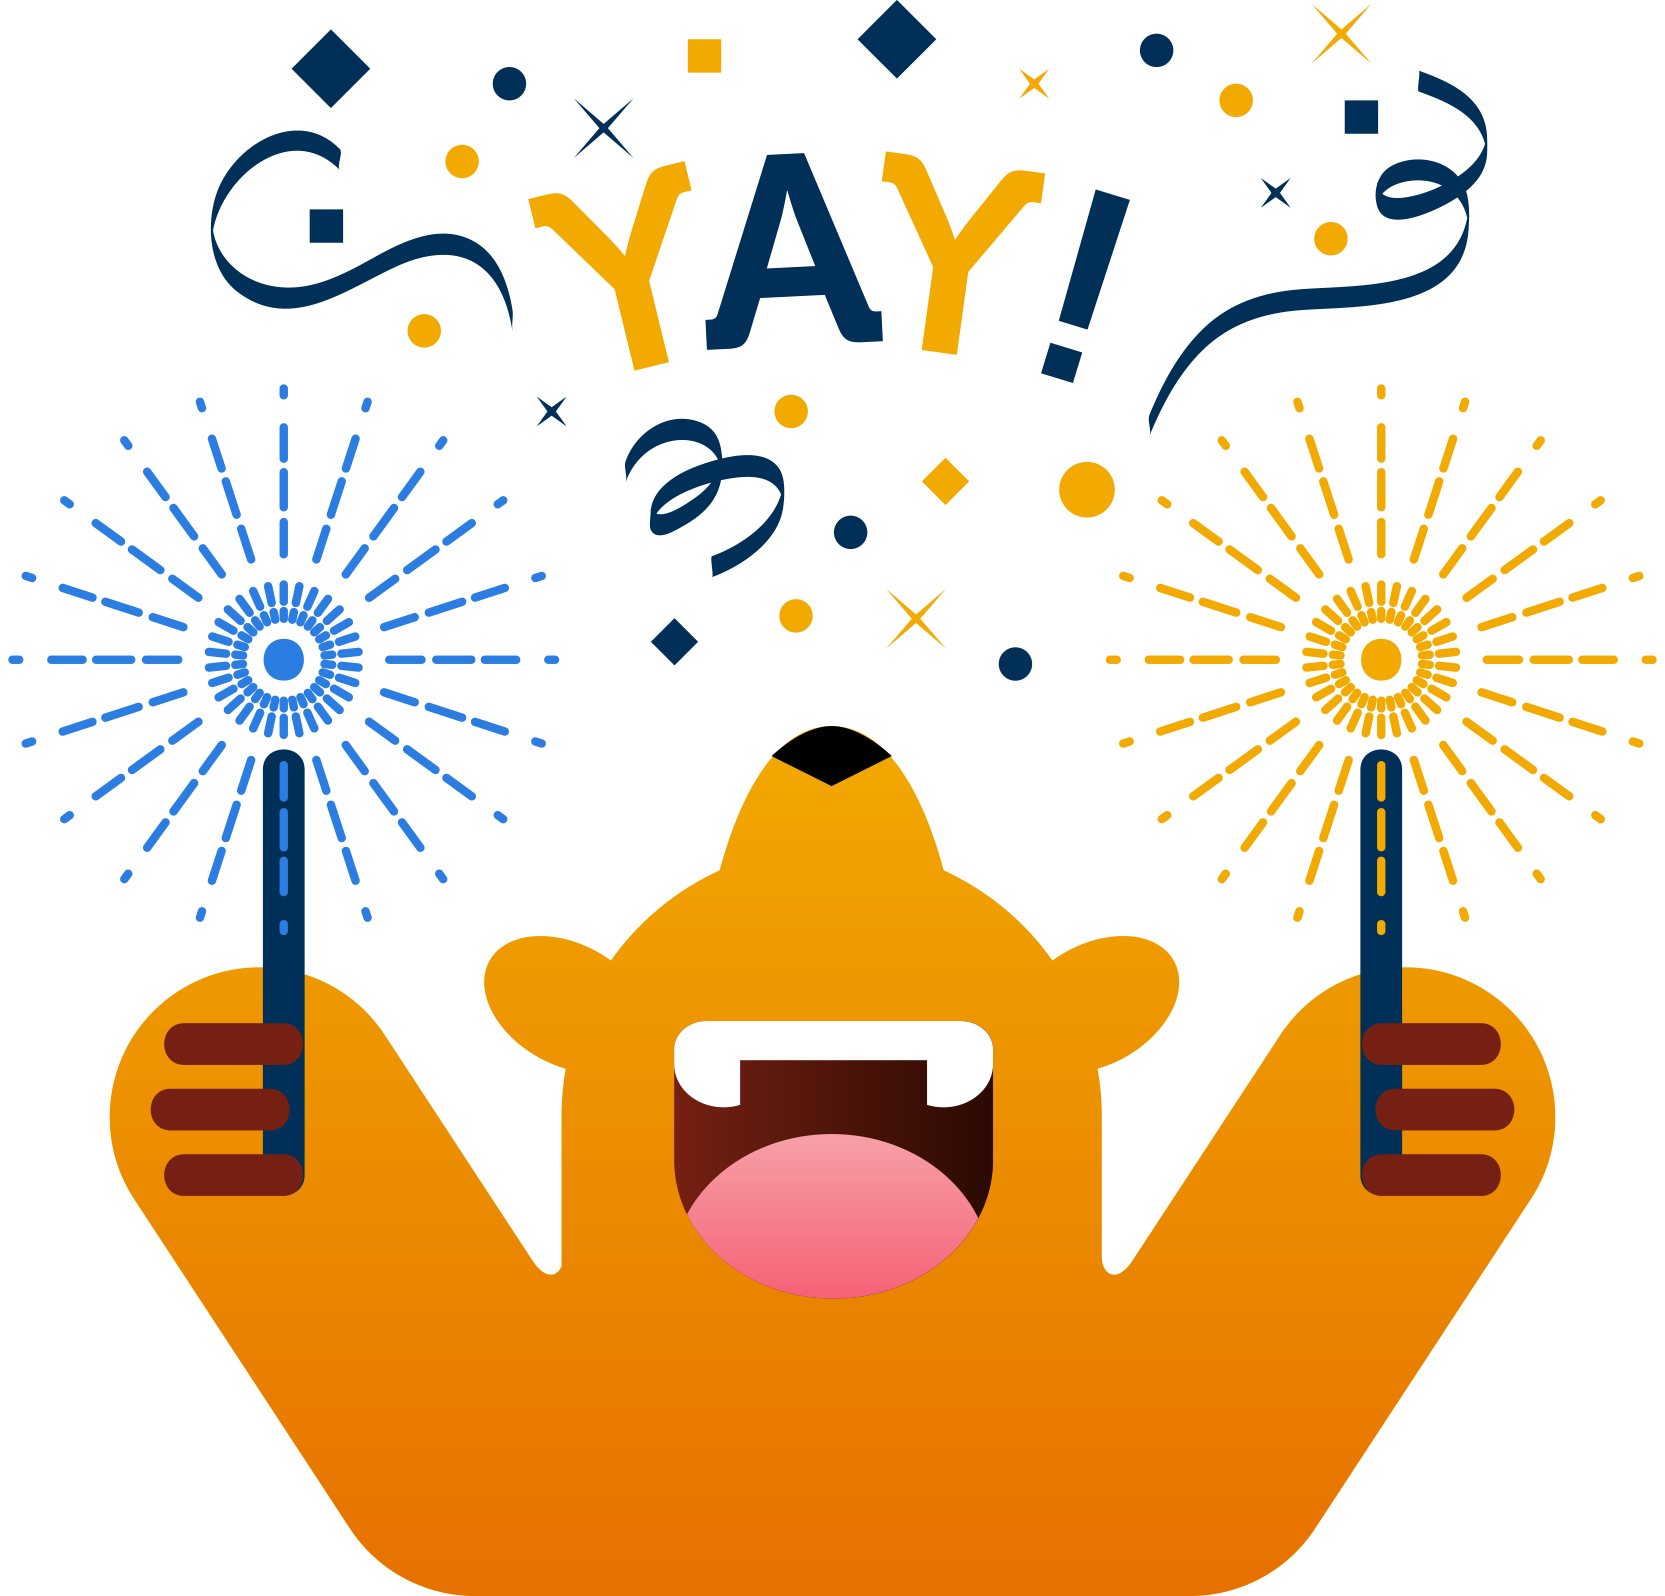 Emoji of a bear holding sparklers with a festive